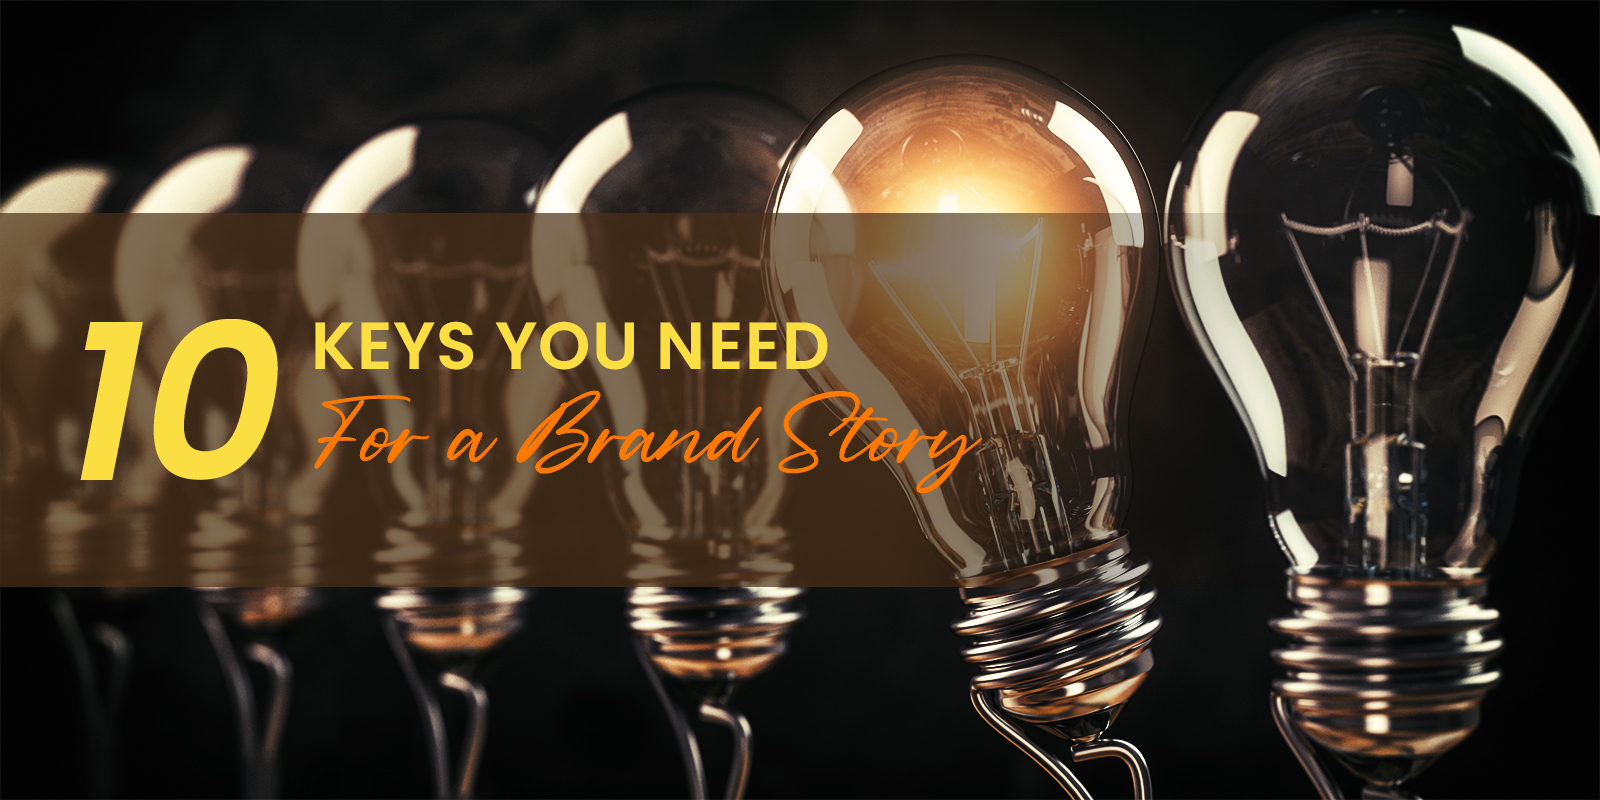 10 Keys You Need For A Brand Story